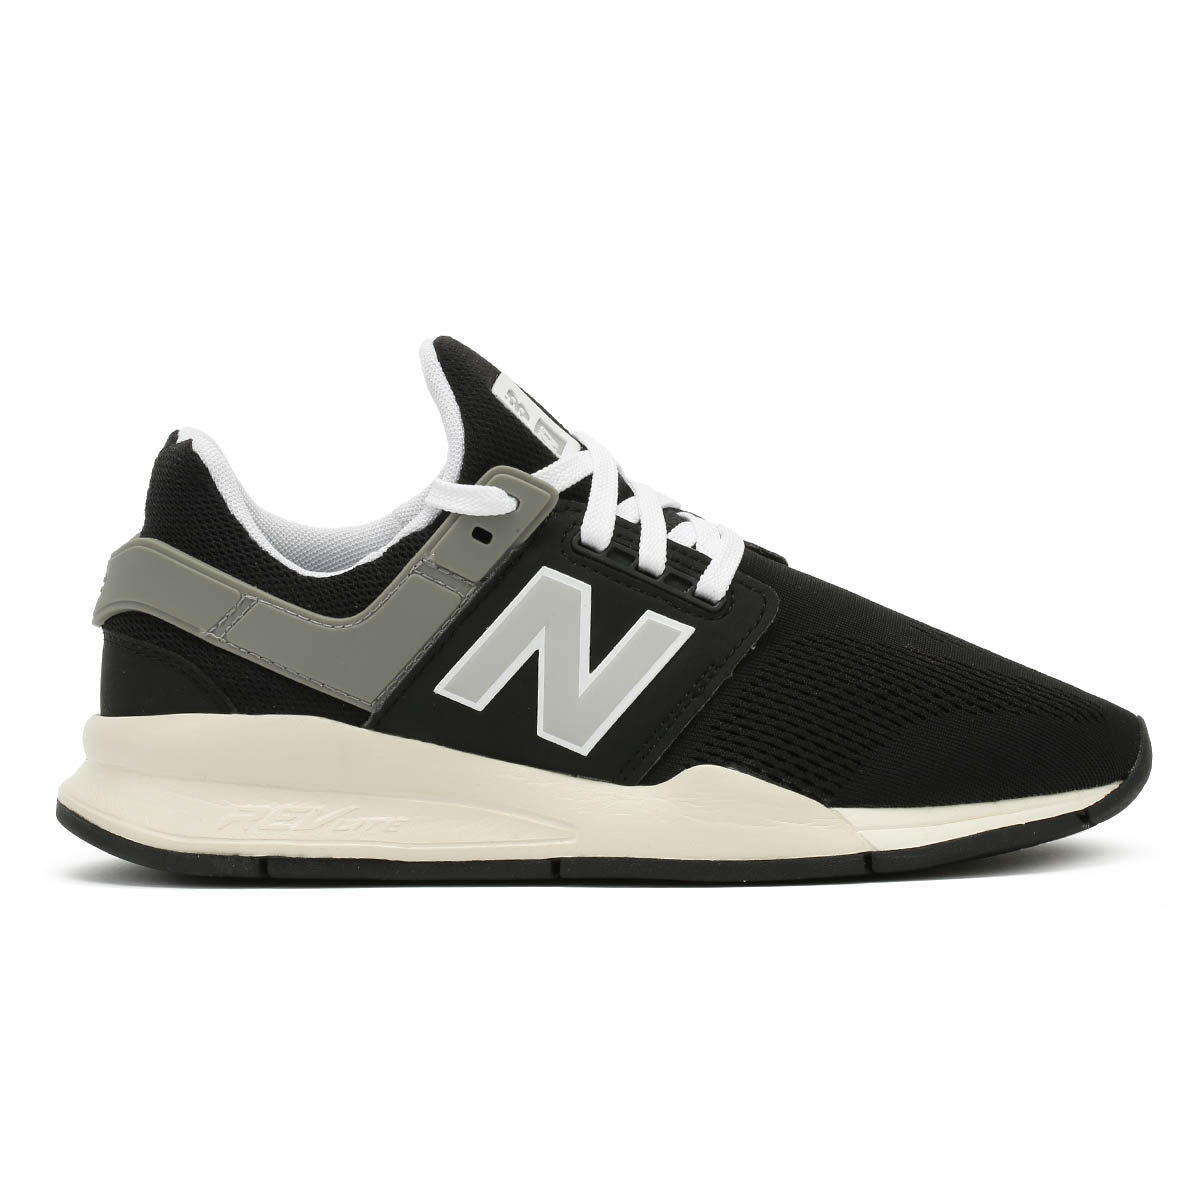 a3e6abdd Details about New Balance Mens Trainers 247 Black & White Lace Up Sport  Casual Running Shoes